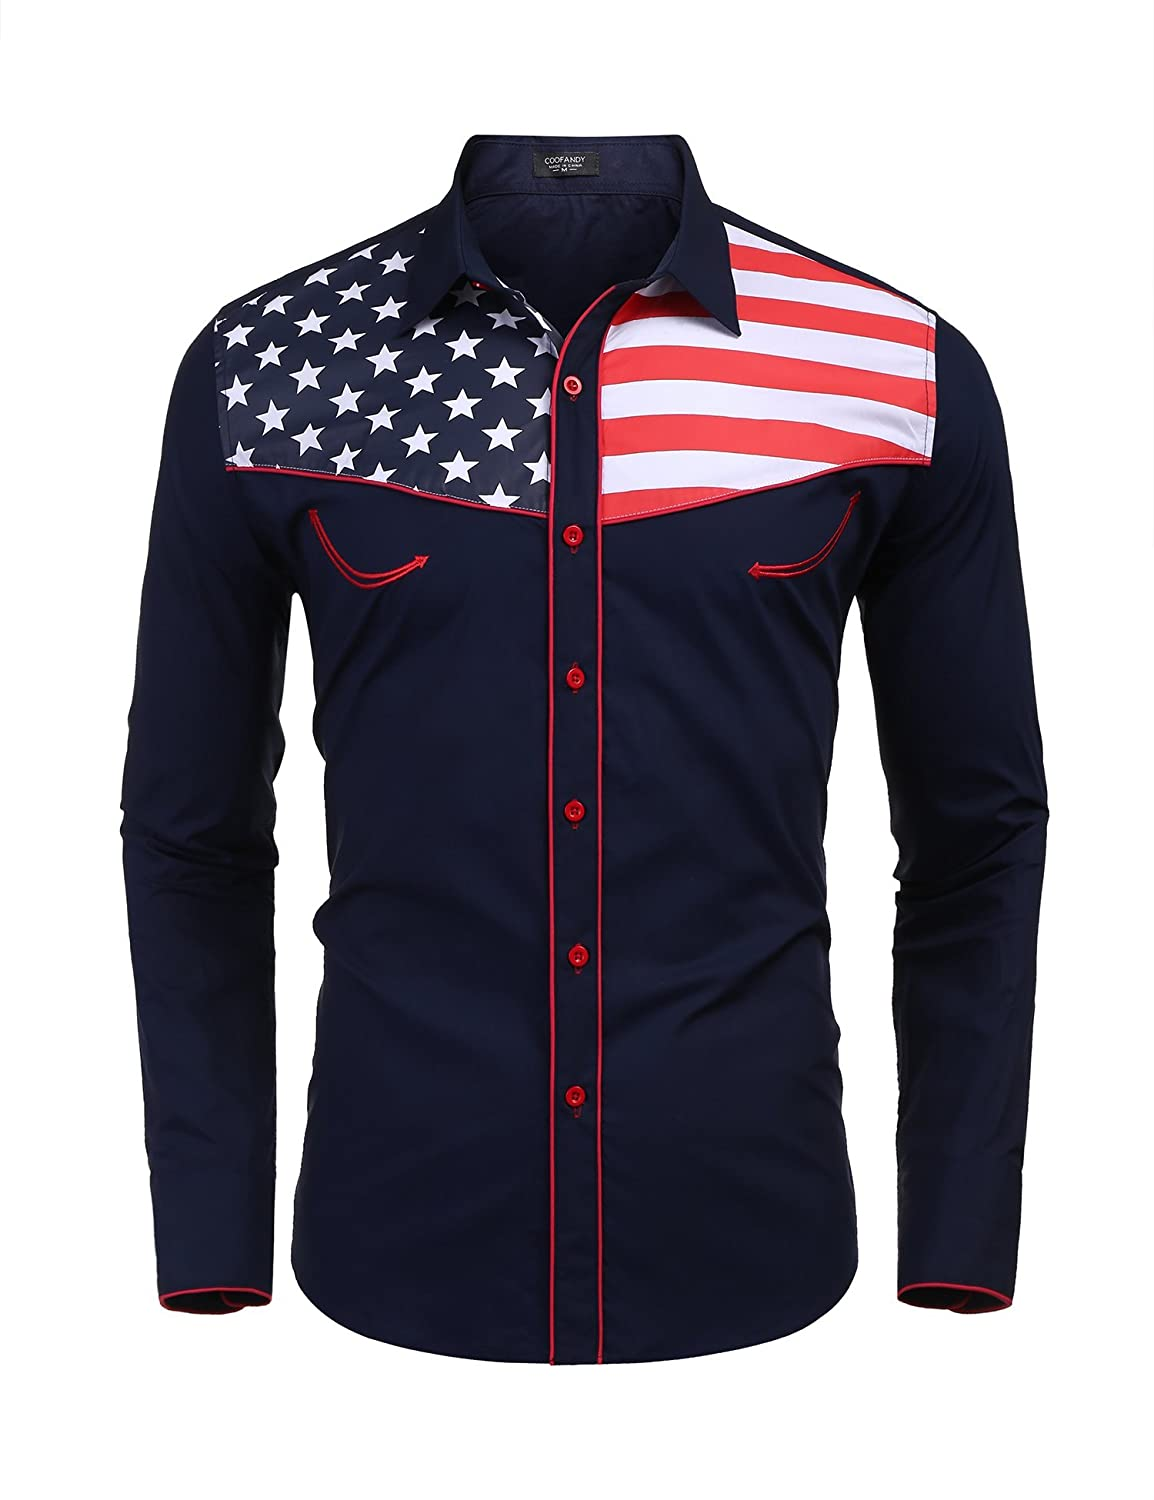 COOFANDY Mens American Flag Shirts Casual Long Sleeve Western Button Down Shirt Large, Blue